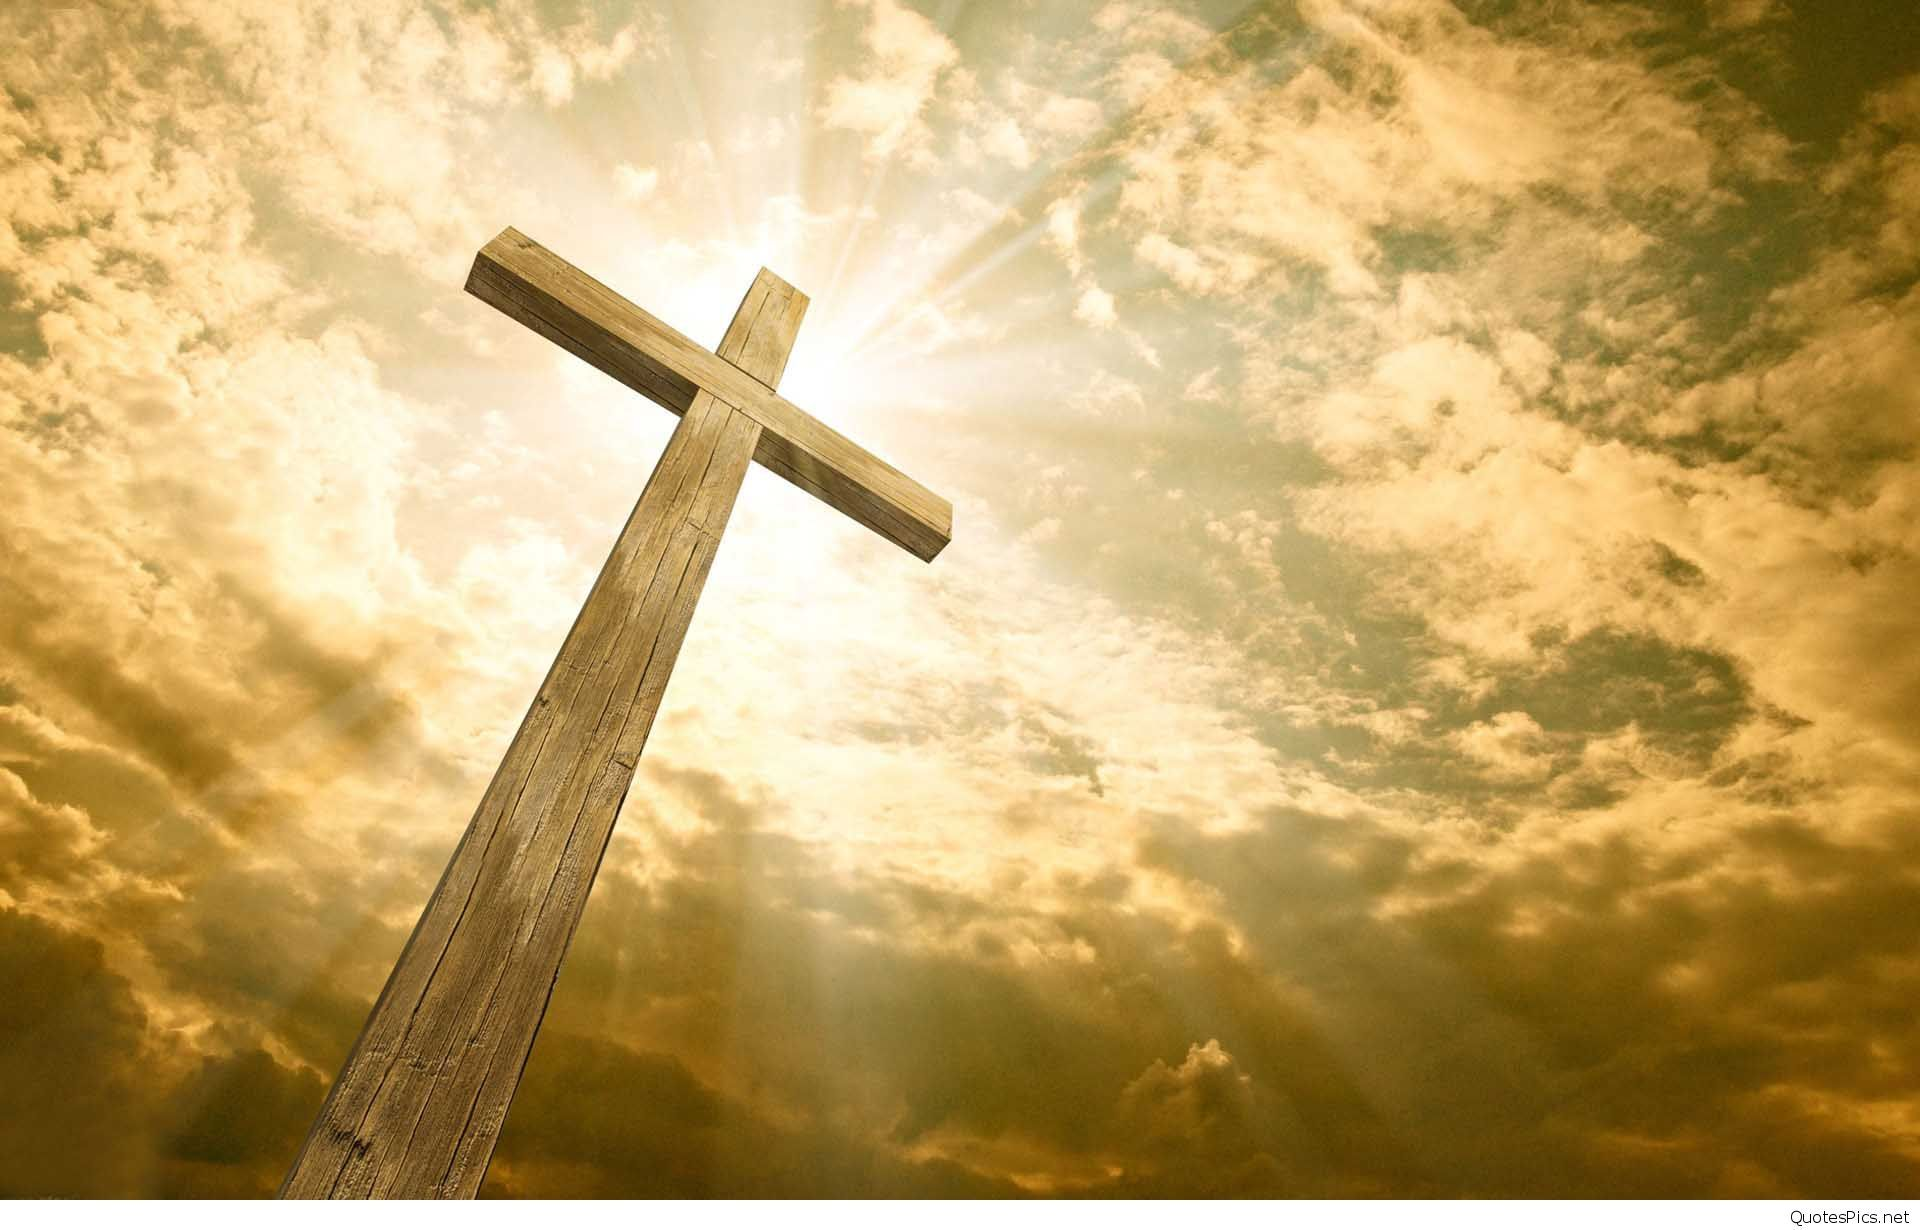 Cross hd wallpapers backgrounds wallpaper a chatholic cross hd wallpapers backgrounds wallpaper voltagebd Choice Image